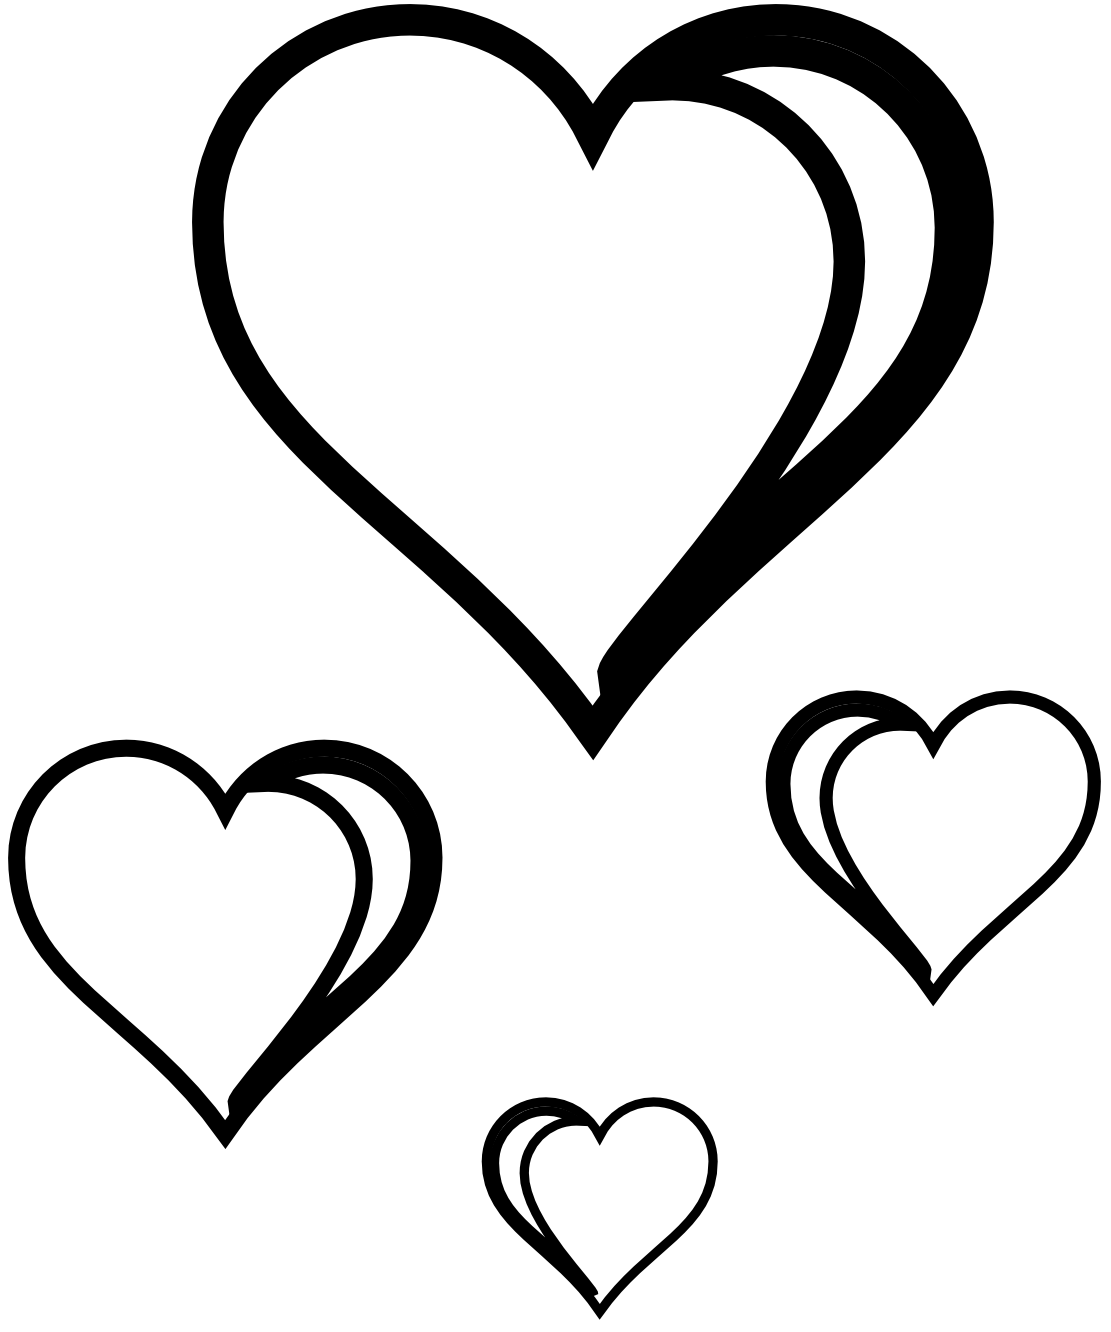 Two Hearts Clipart Black And White Free Clipart